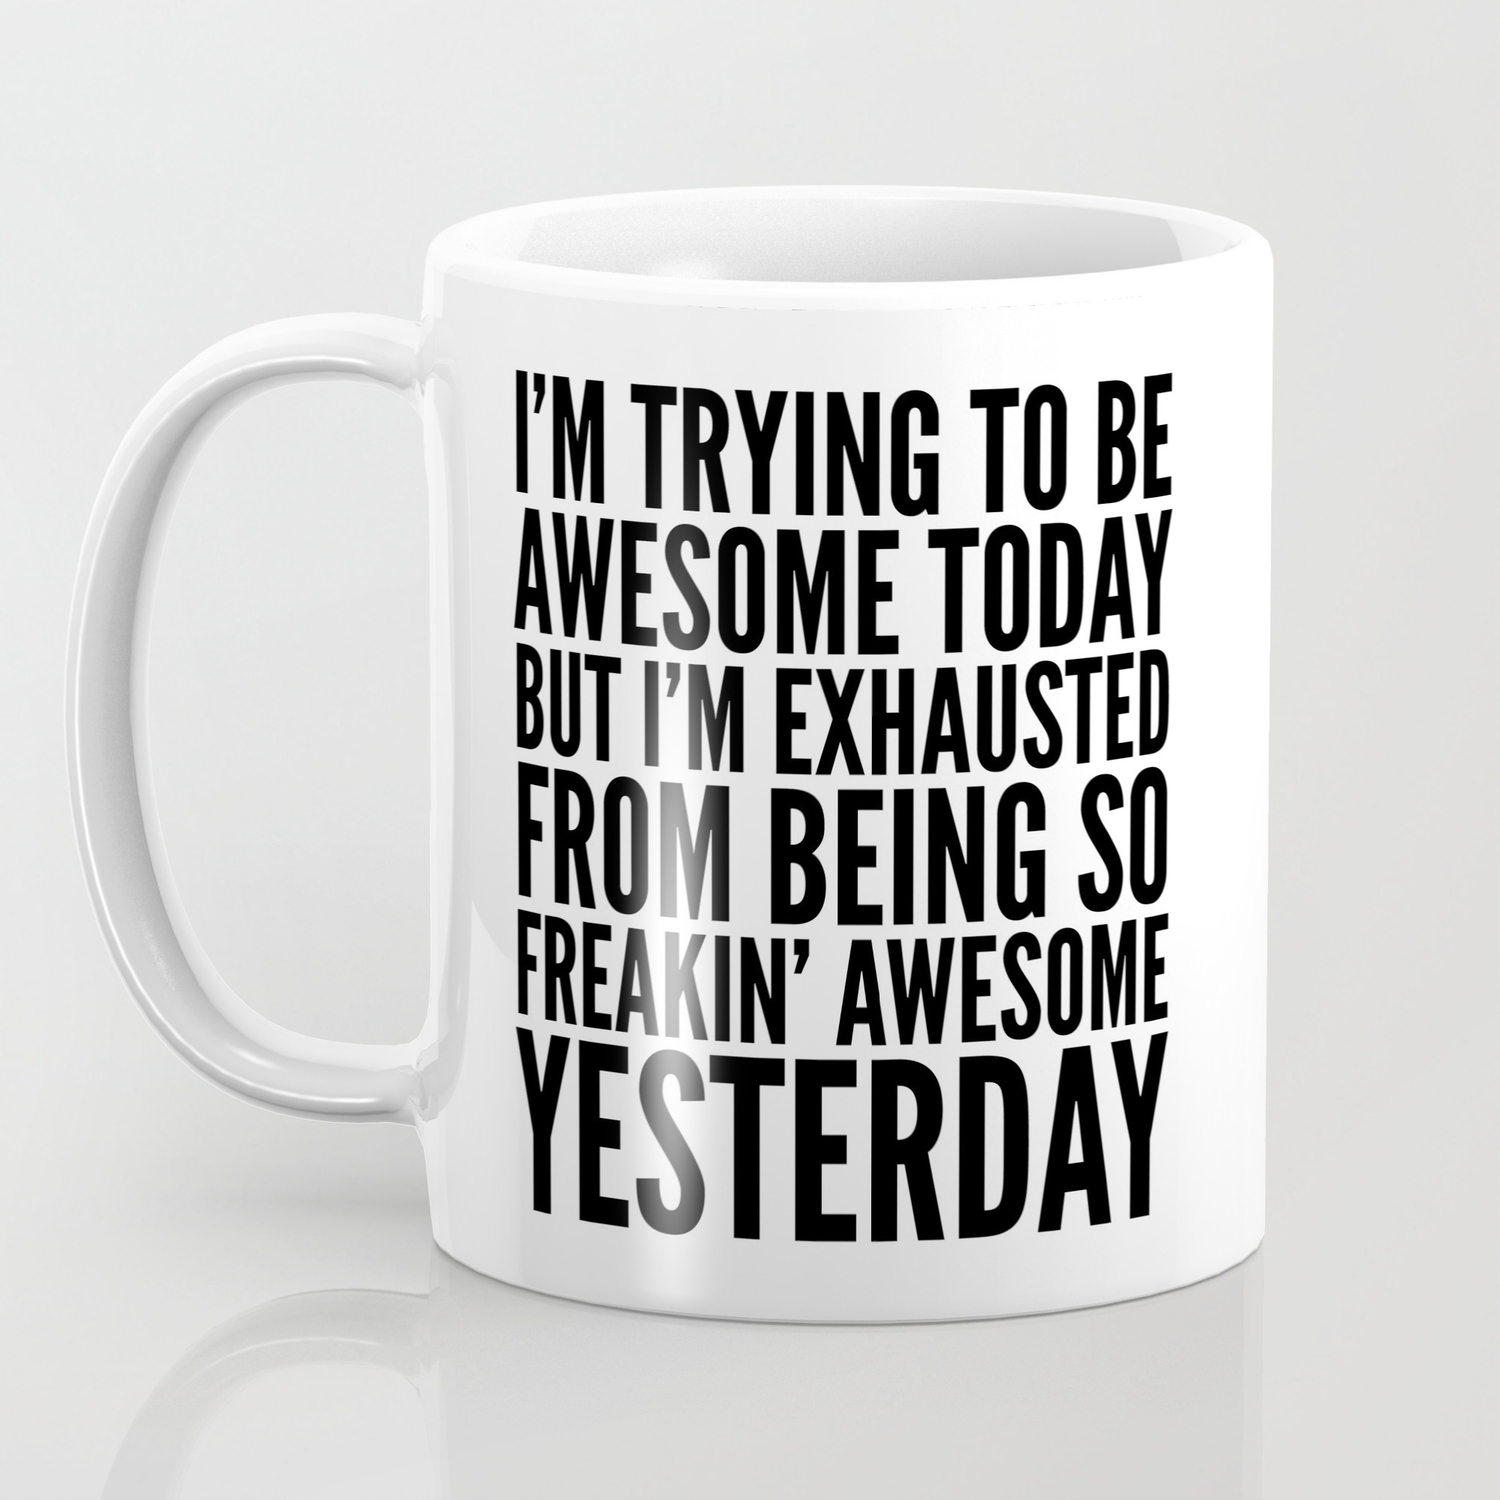 I M Trying To Be Awesome Today But I M Exhausted From Being So Freakin Awesome Yesterday Coffee Mug By Creativeangel Society6